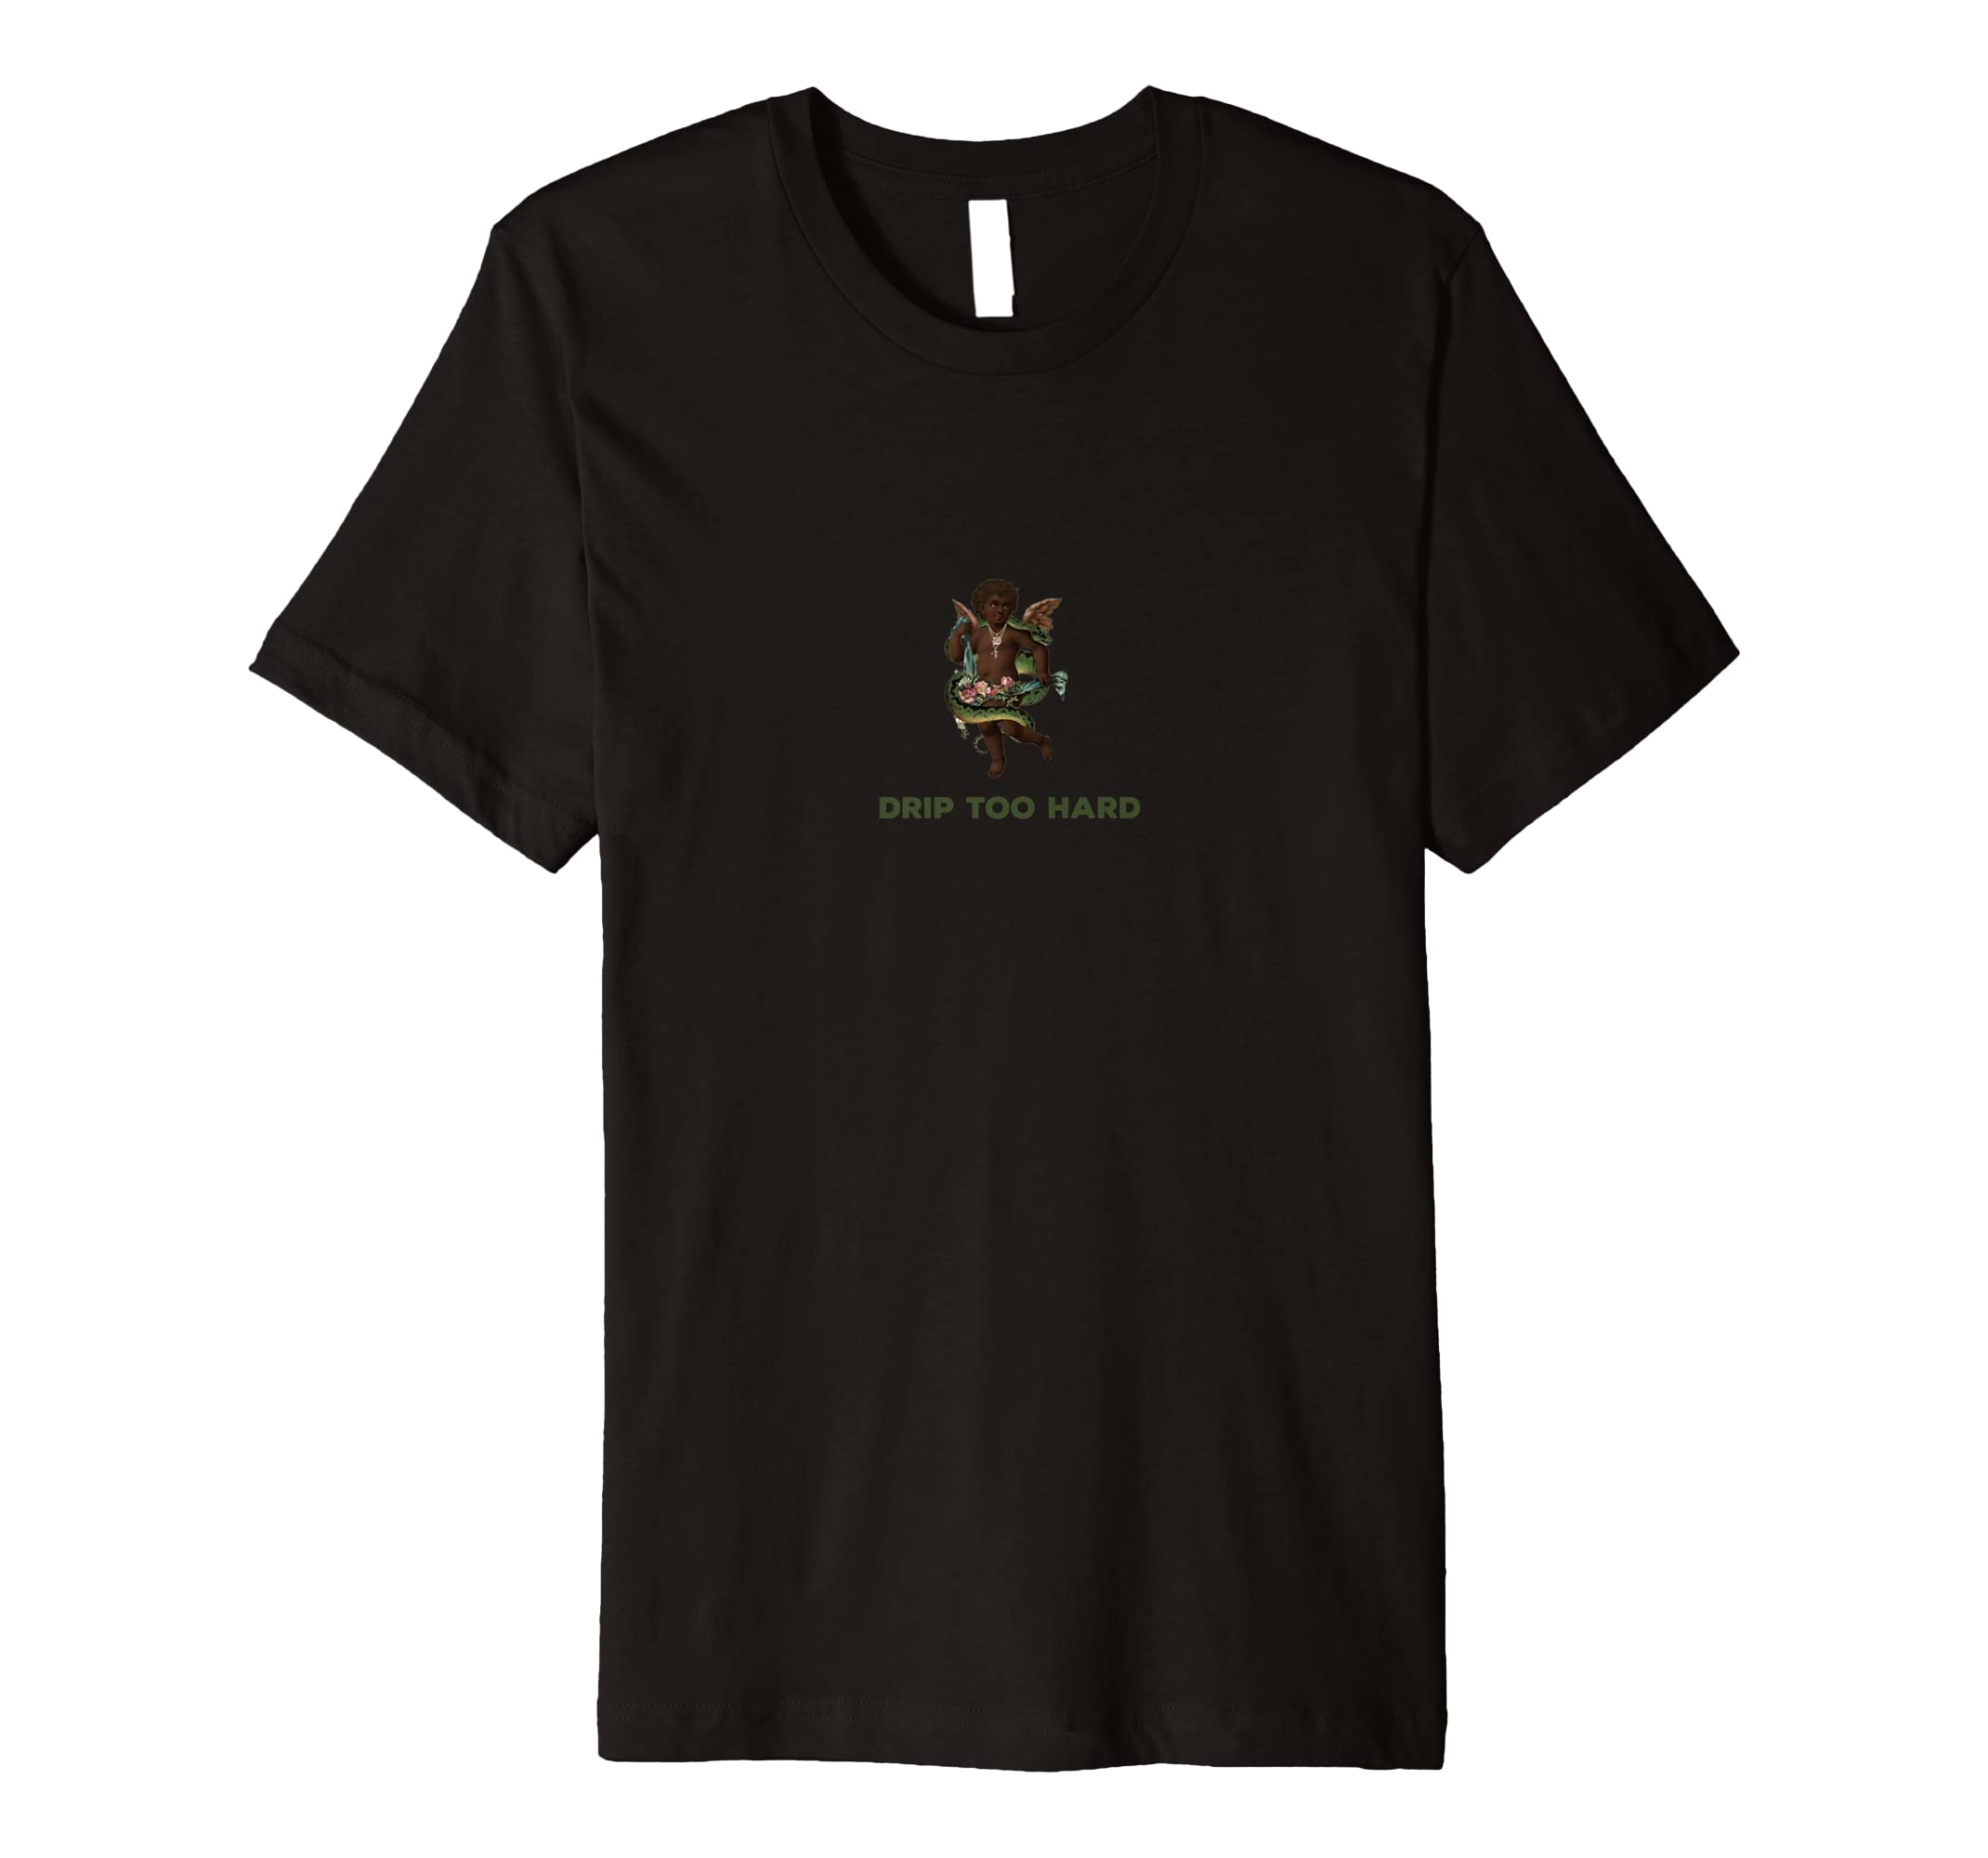 89641d6af041 Amazon.com  Drip Too Hard T-Shirt featuring Lil Baby   Gunna  Clothing